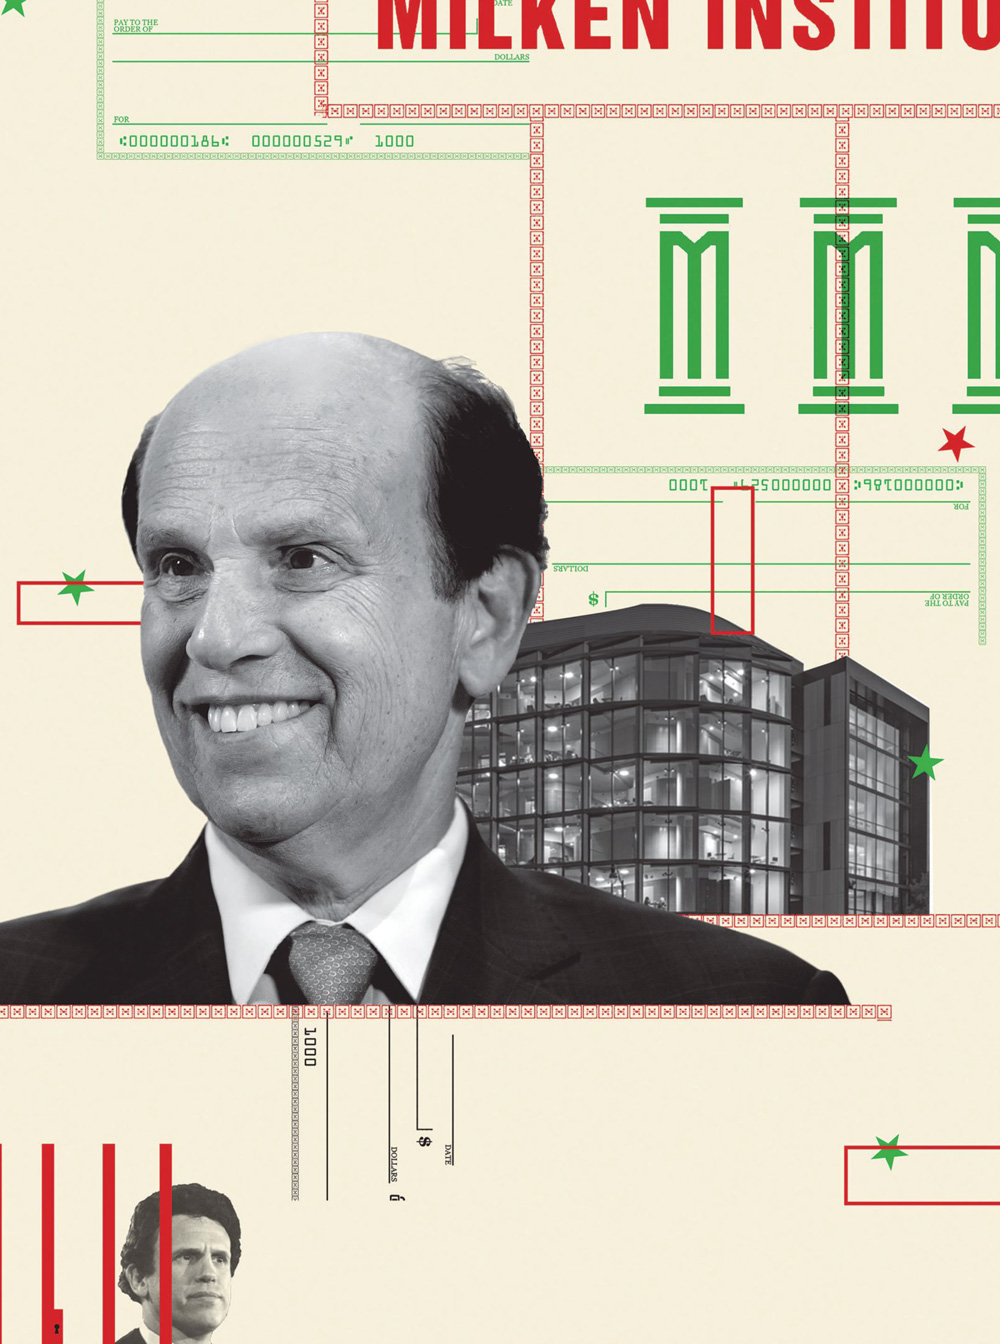 The Michael Milken Project